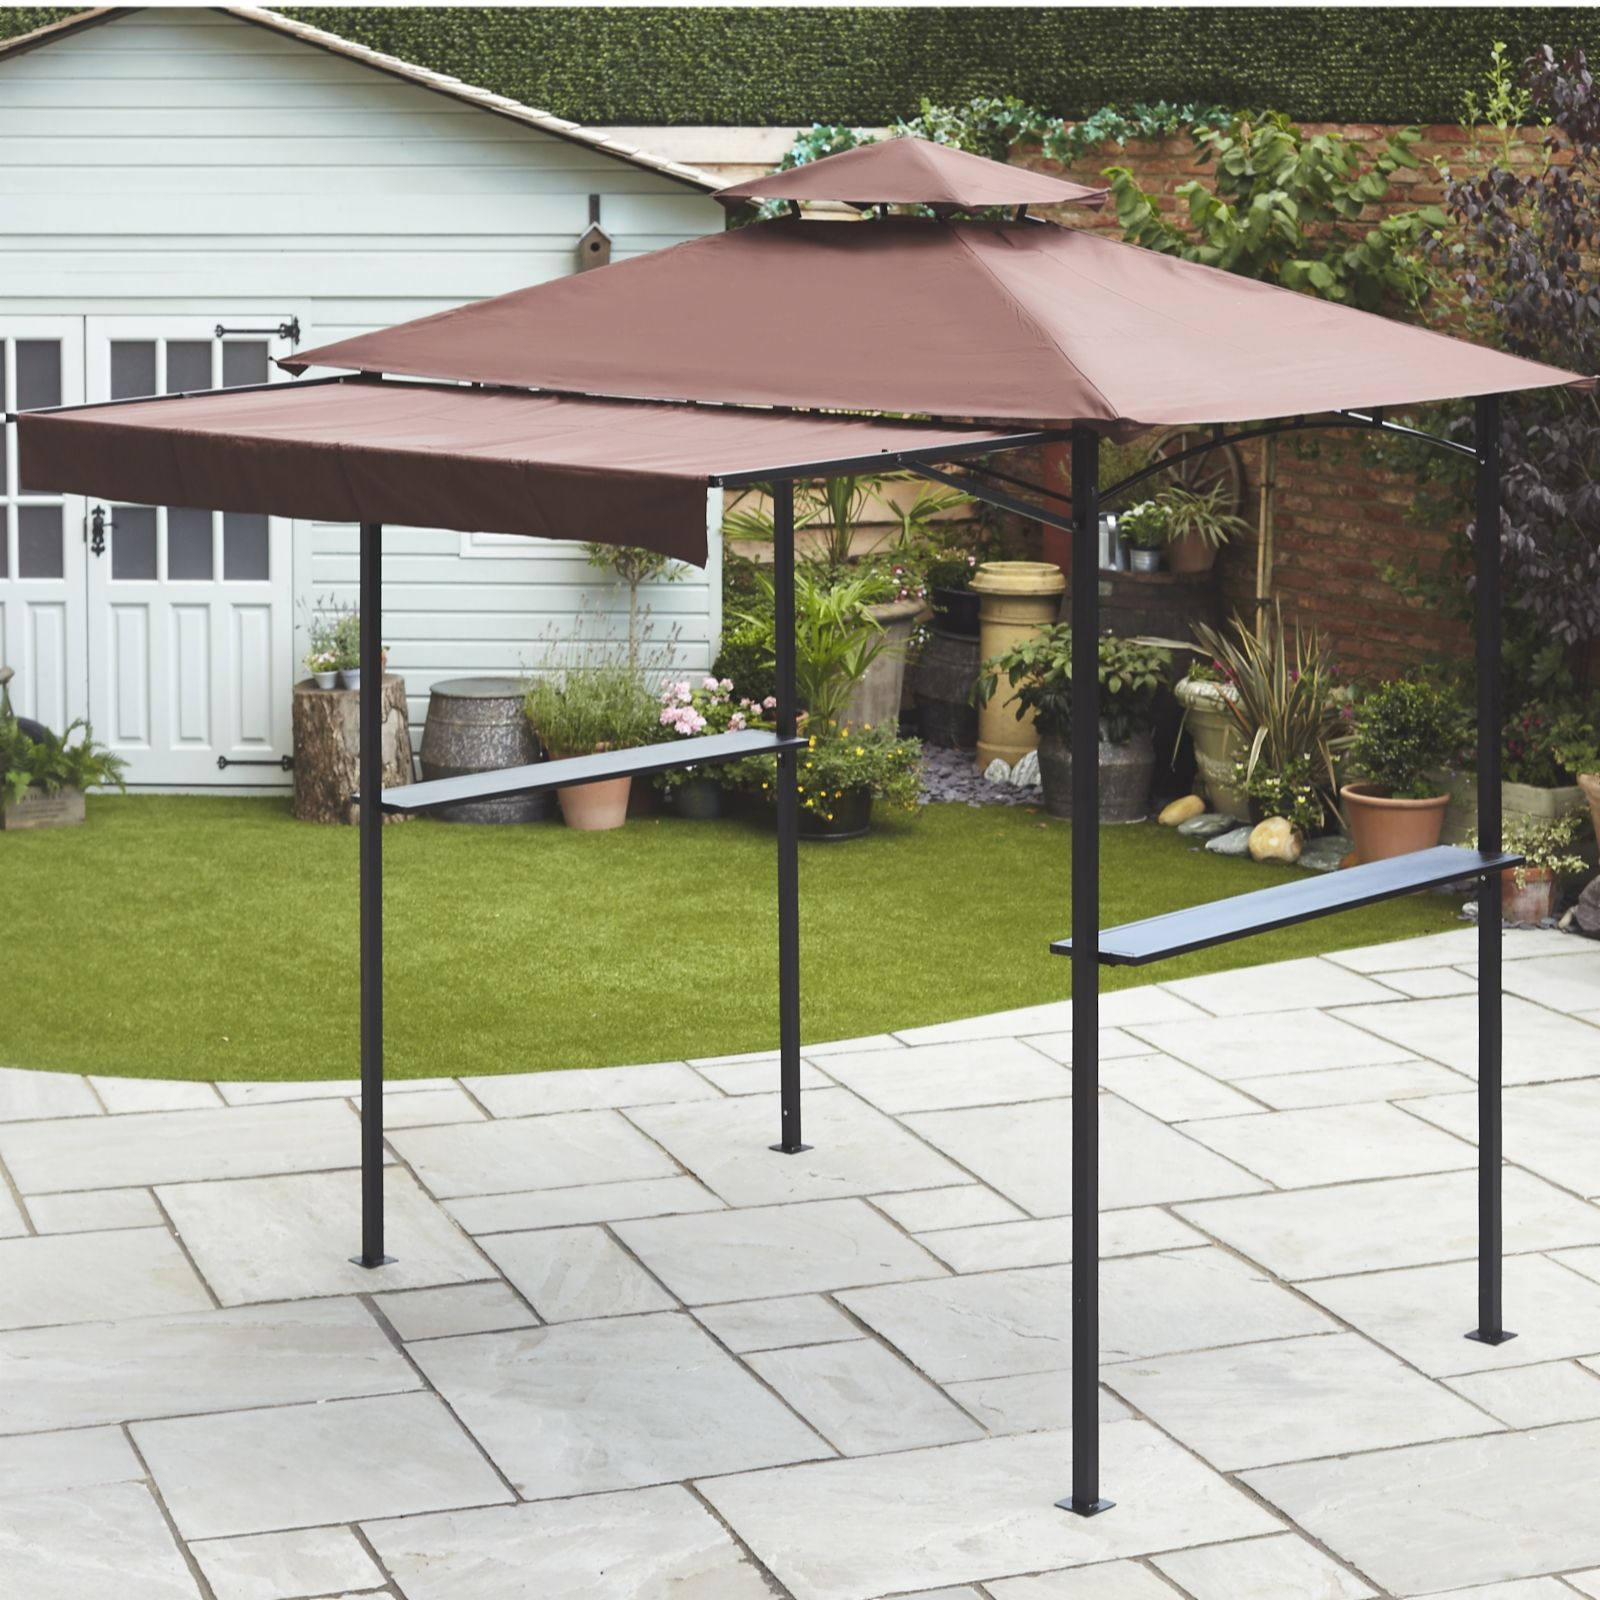 build grill a for gazebo everyone bbq projects diy your backyard awning